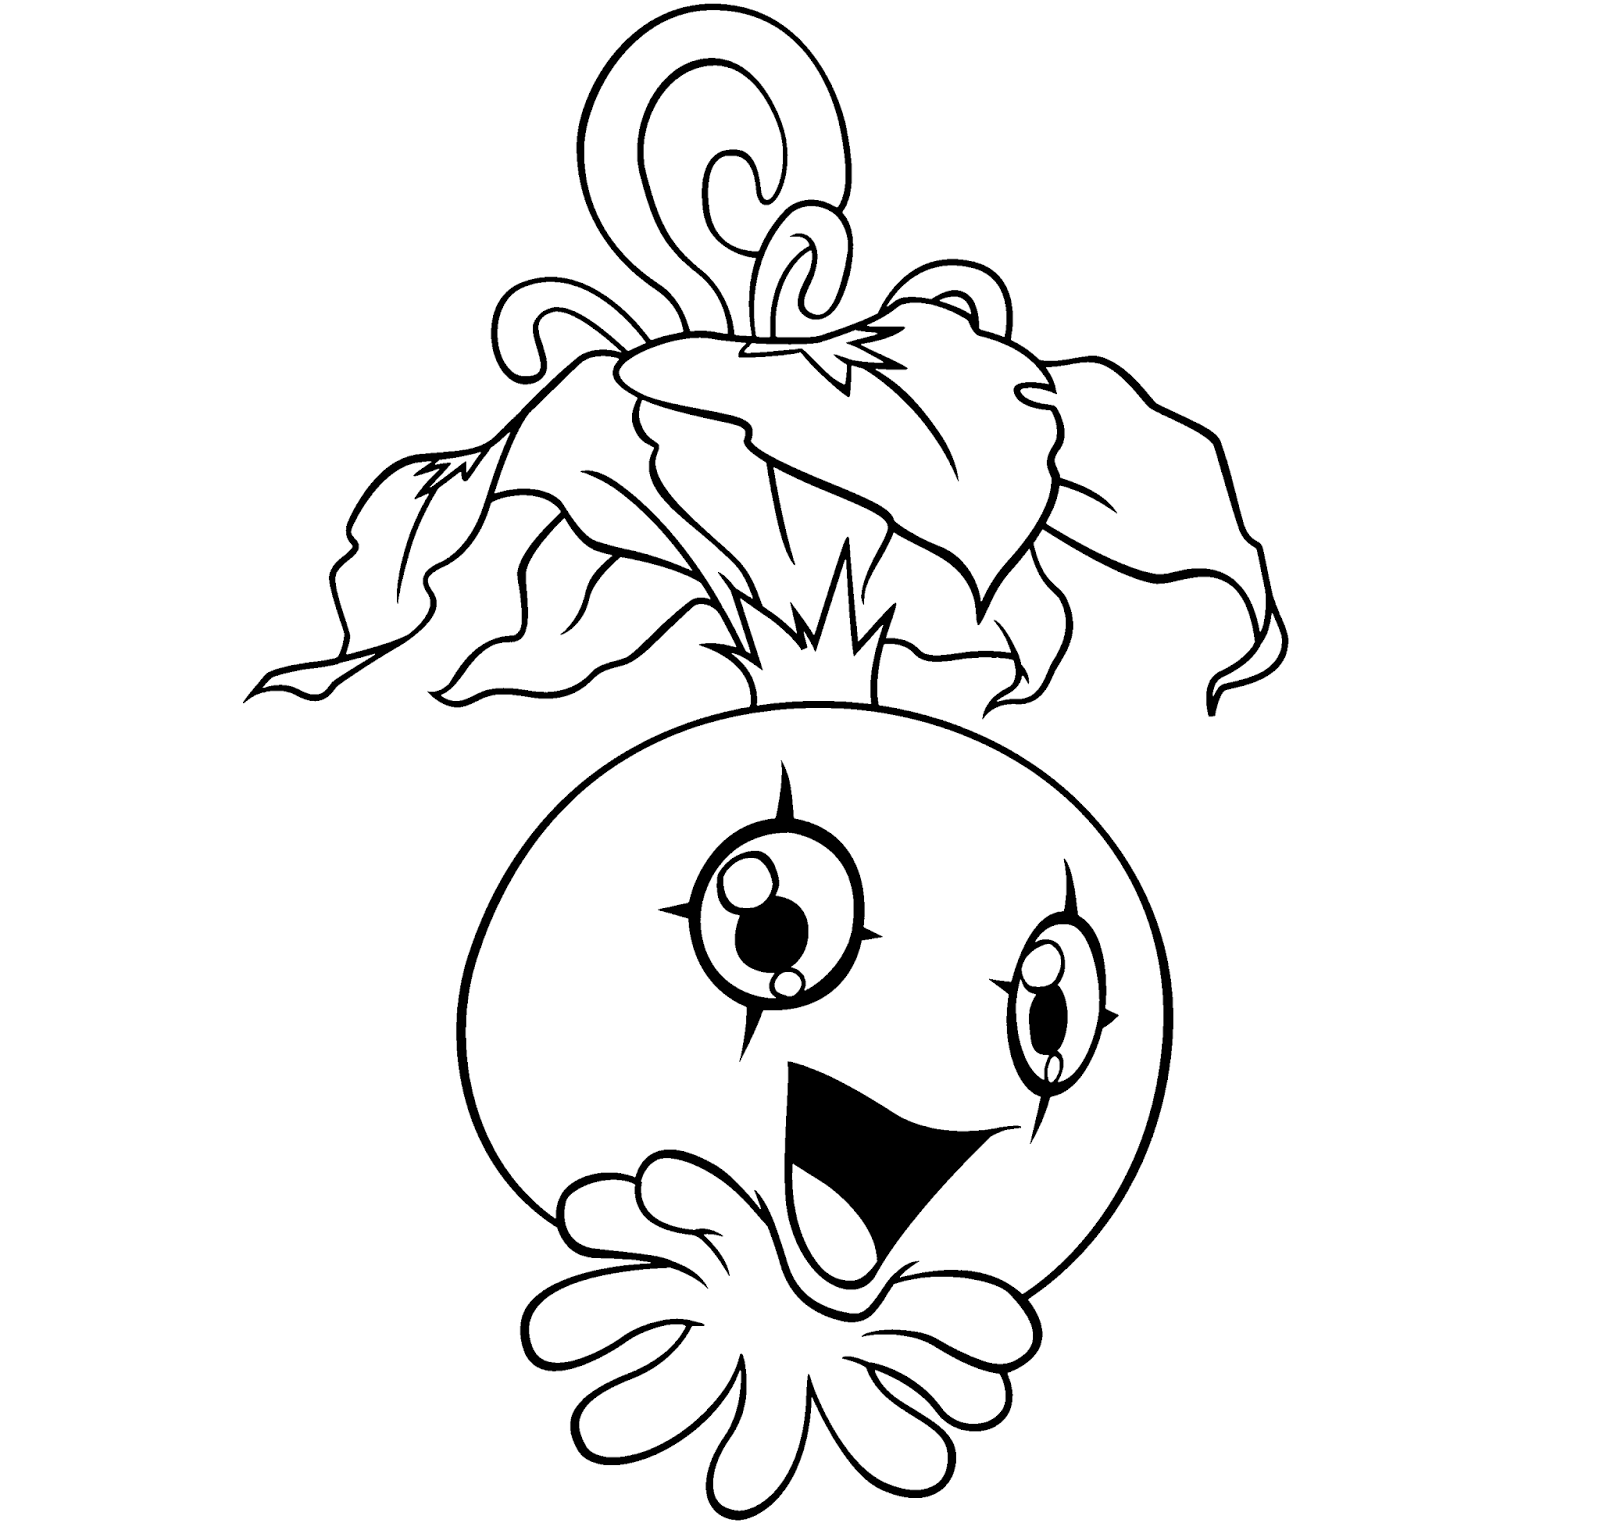 Hurricane Coloring Coloring Pages